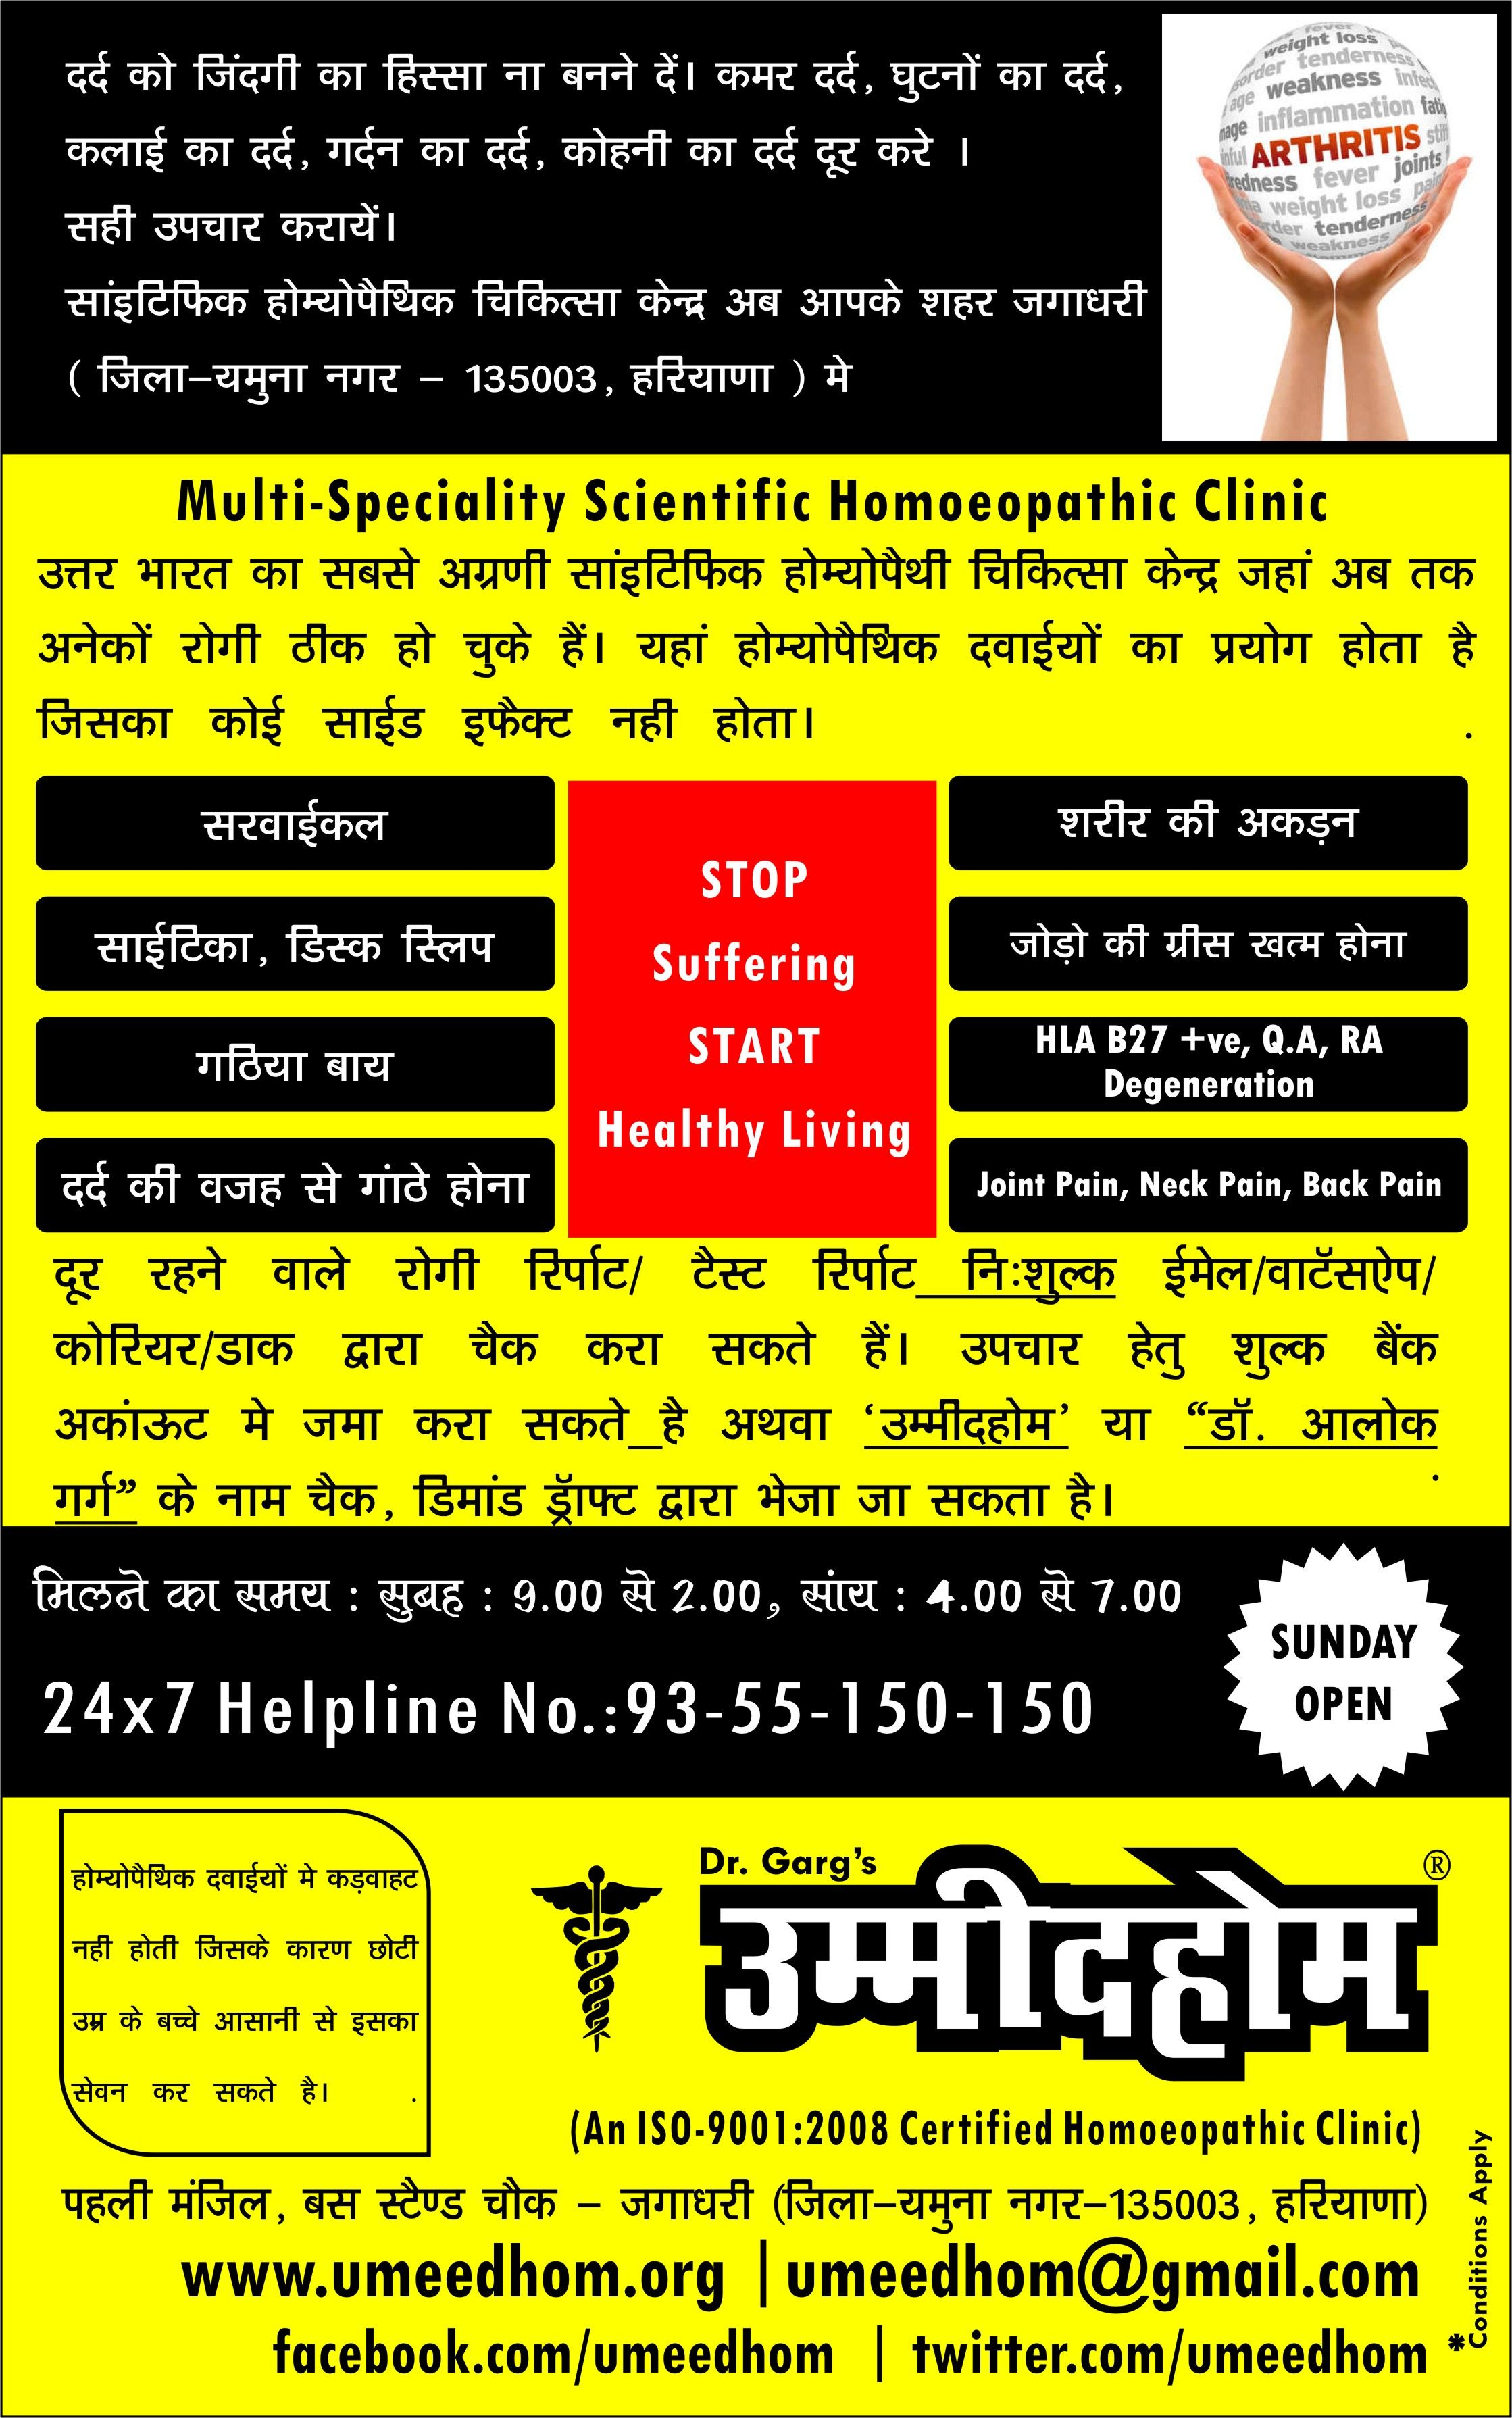 Pin on Umeedhom Scientific Homoeopathic Clinic